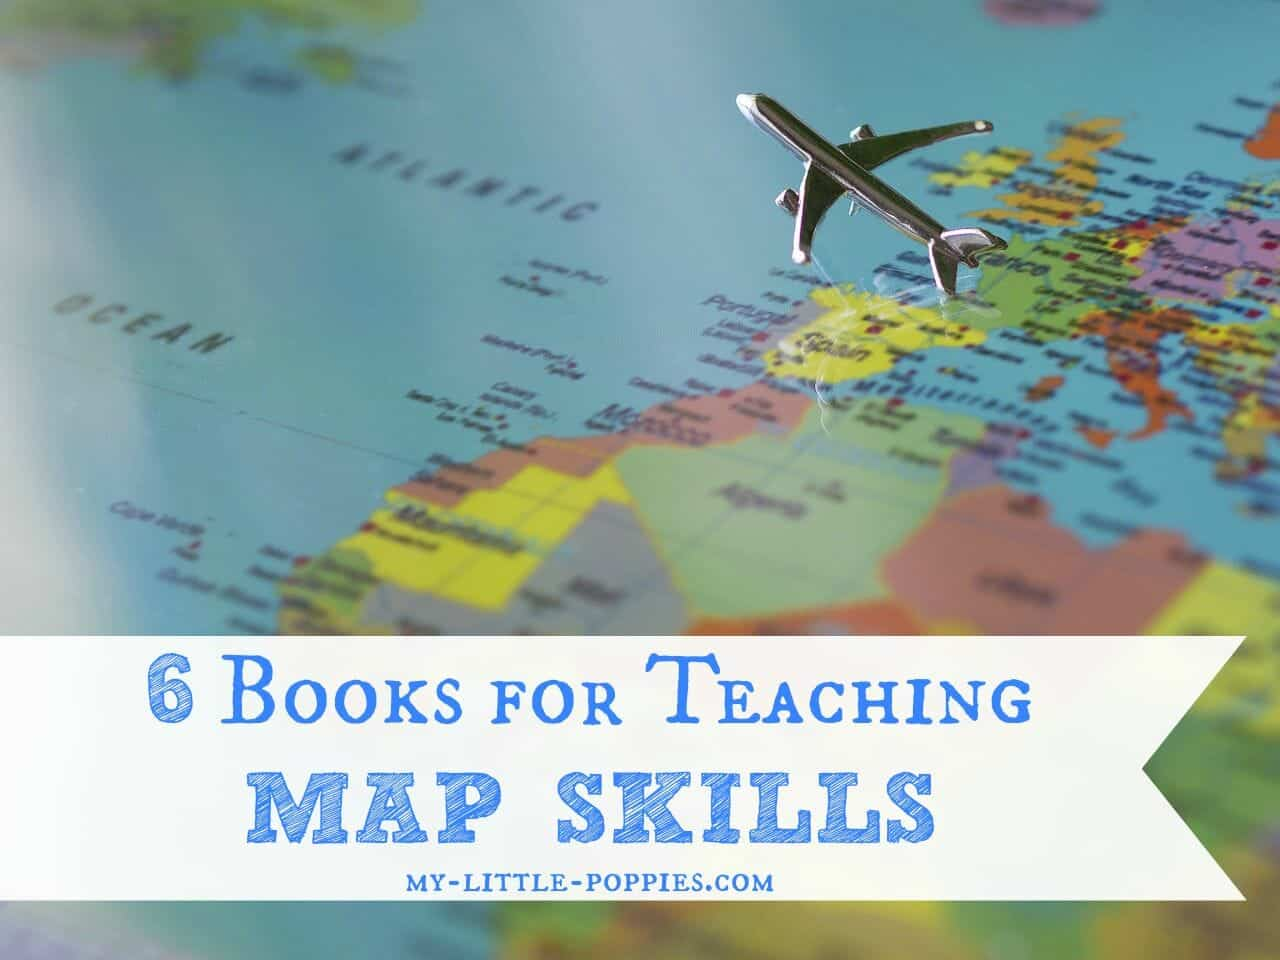 6 Books for Teaching Map Skills